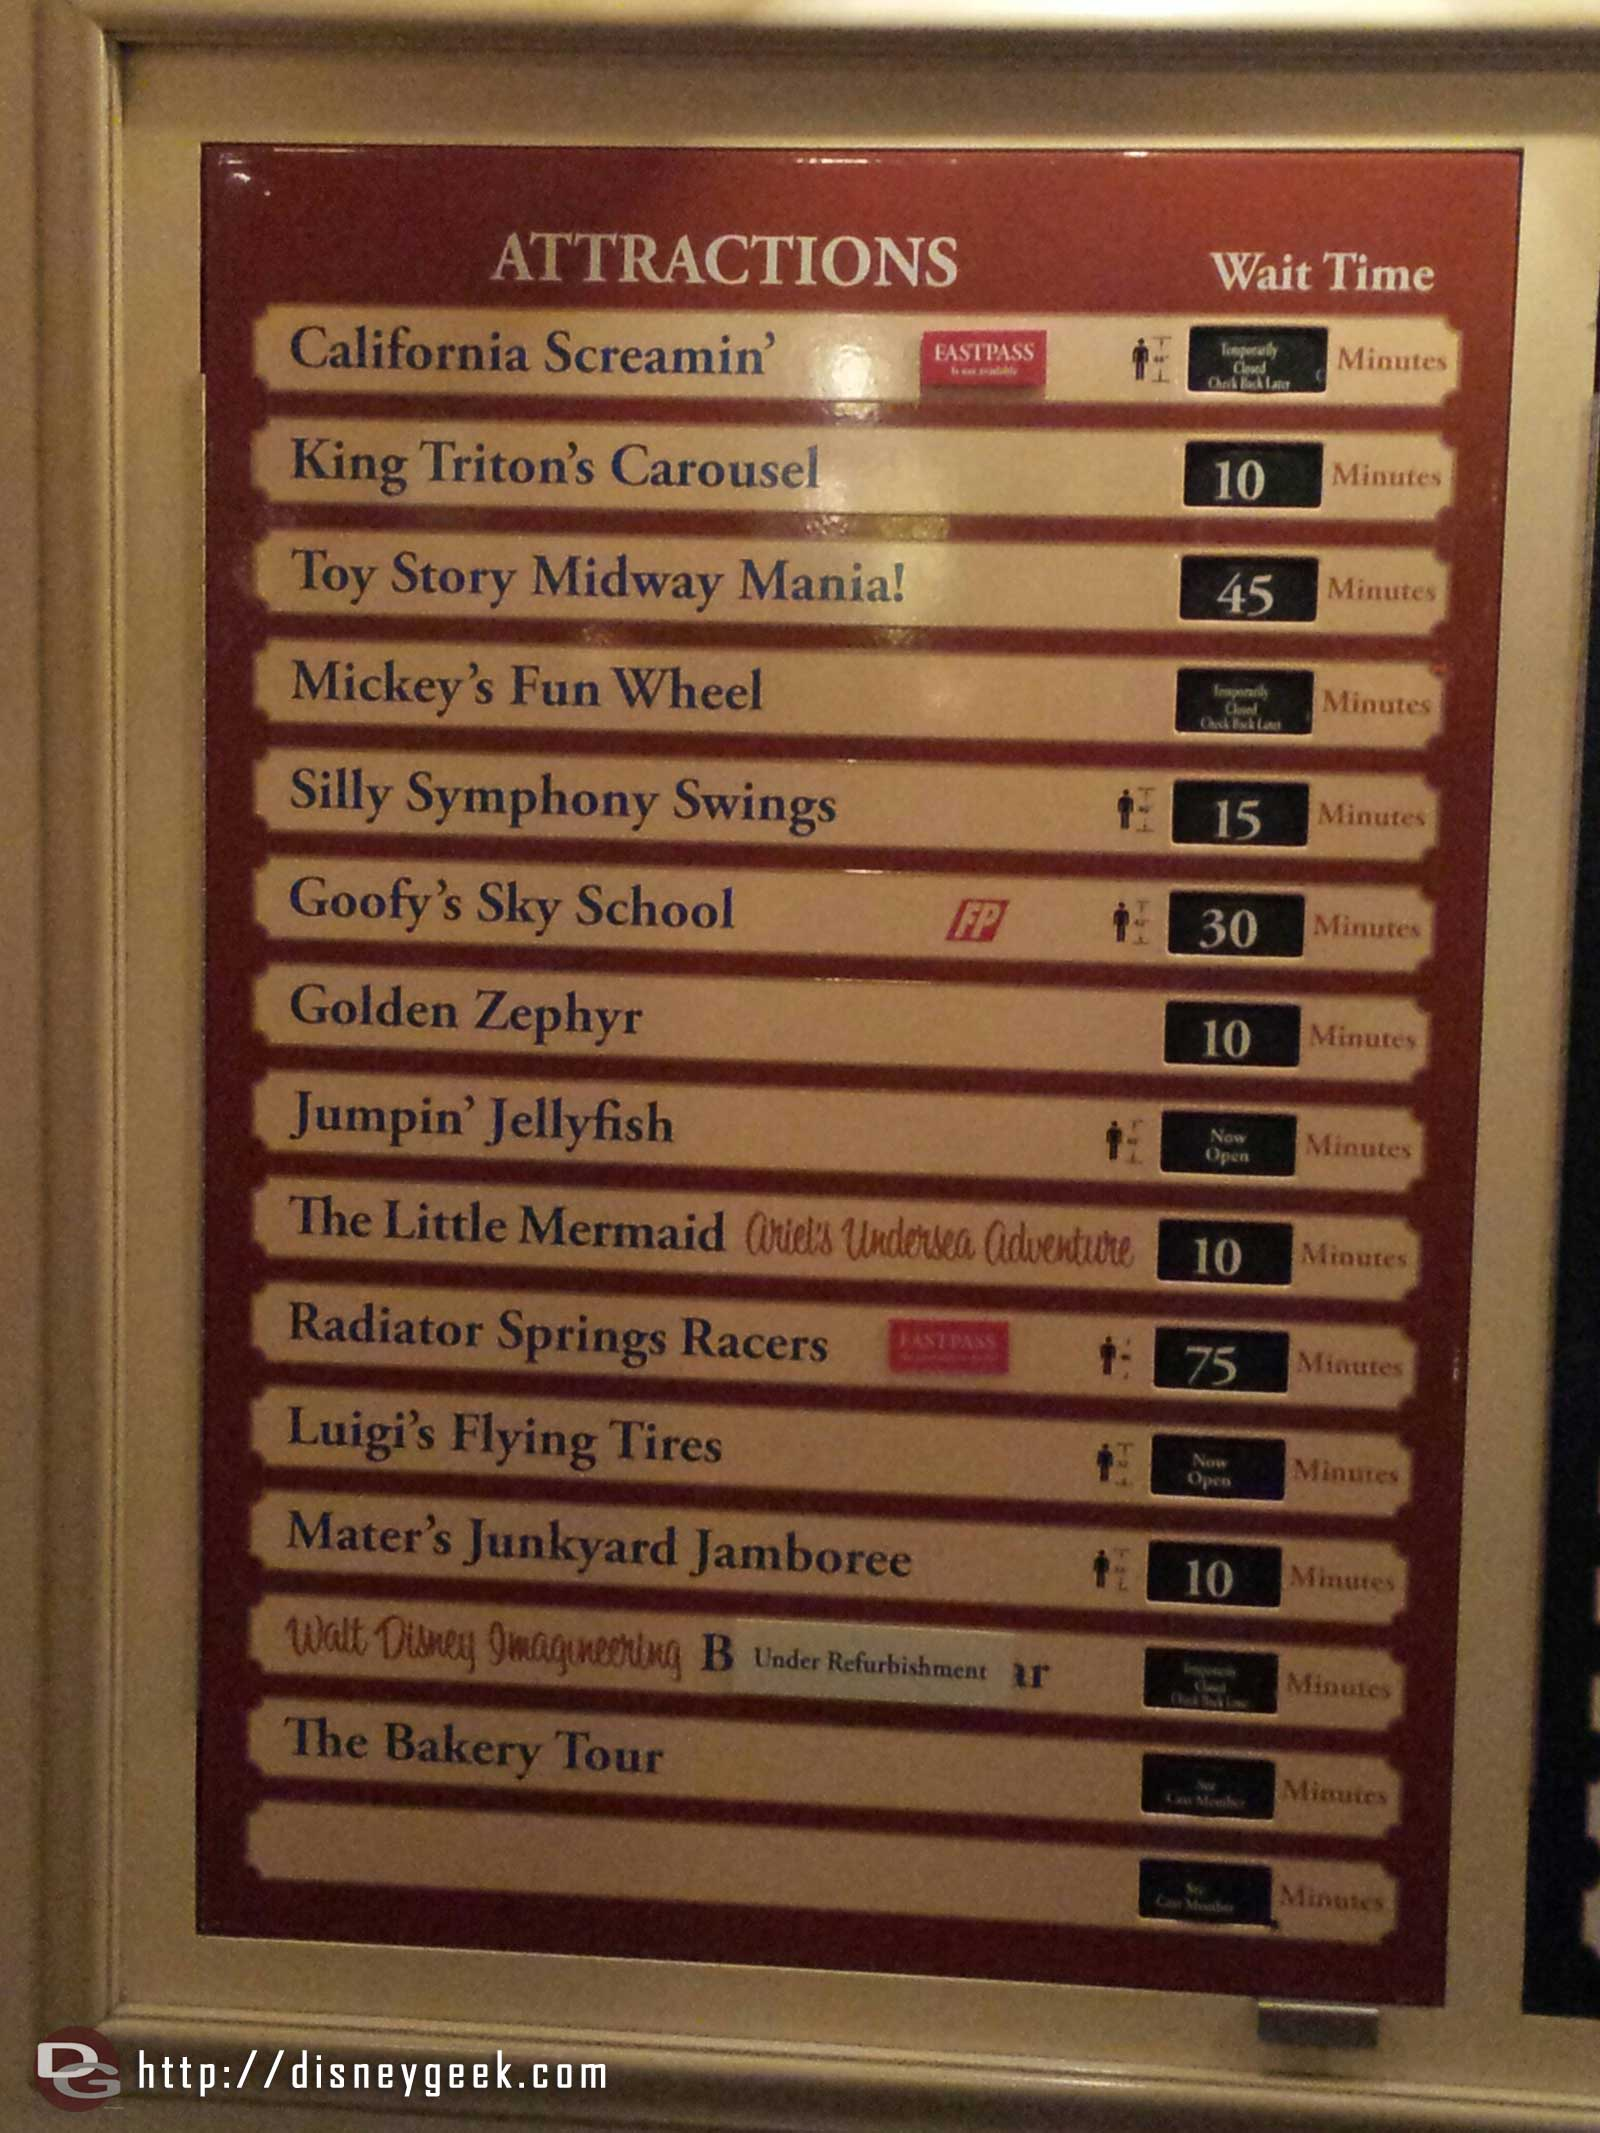 Some Disney California Adventure waits as of 8:43pm